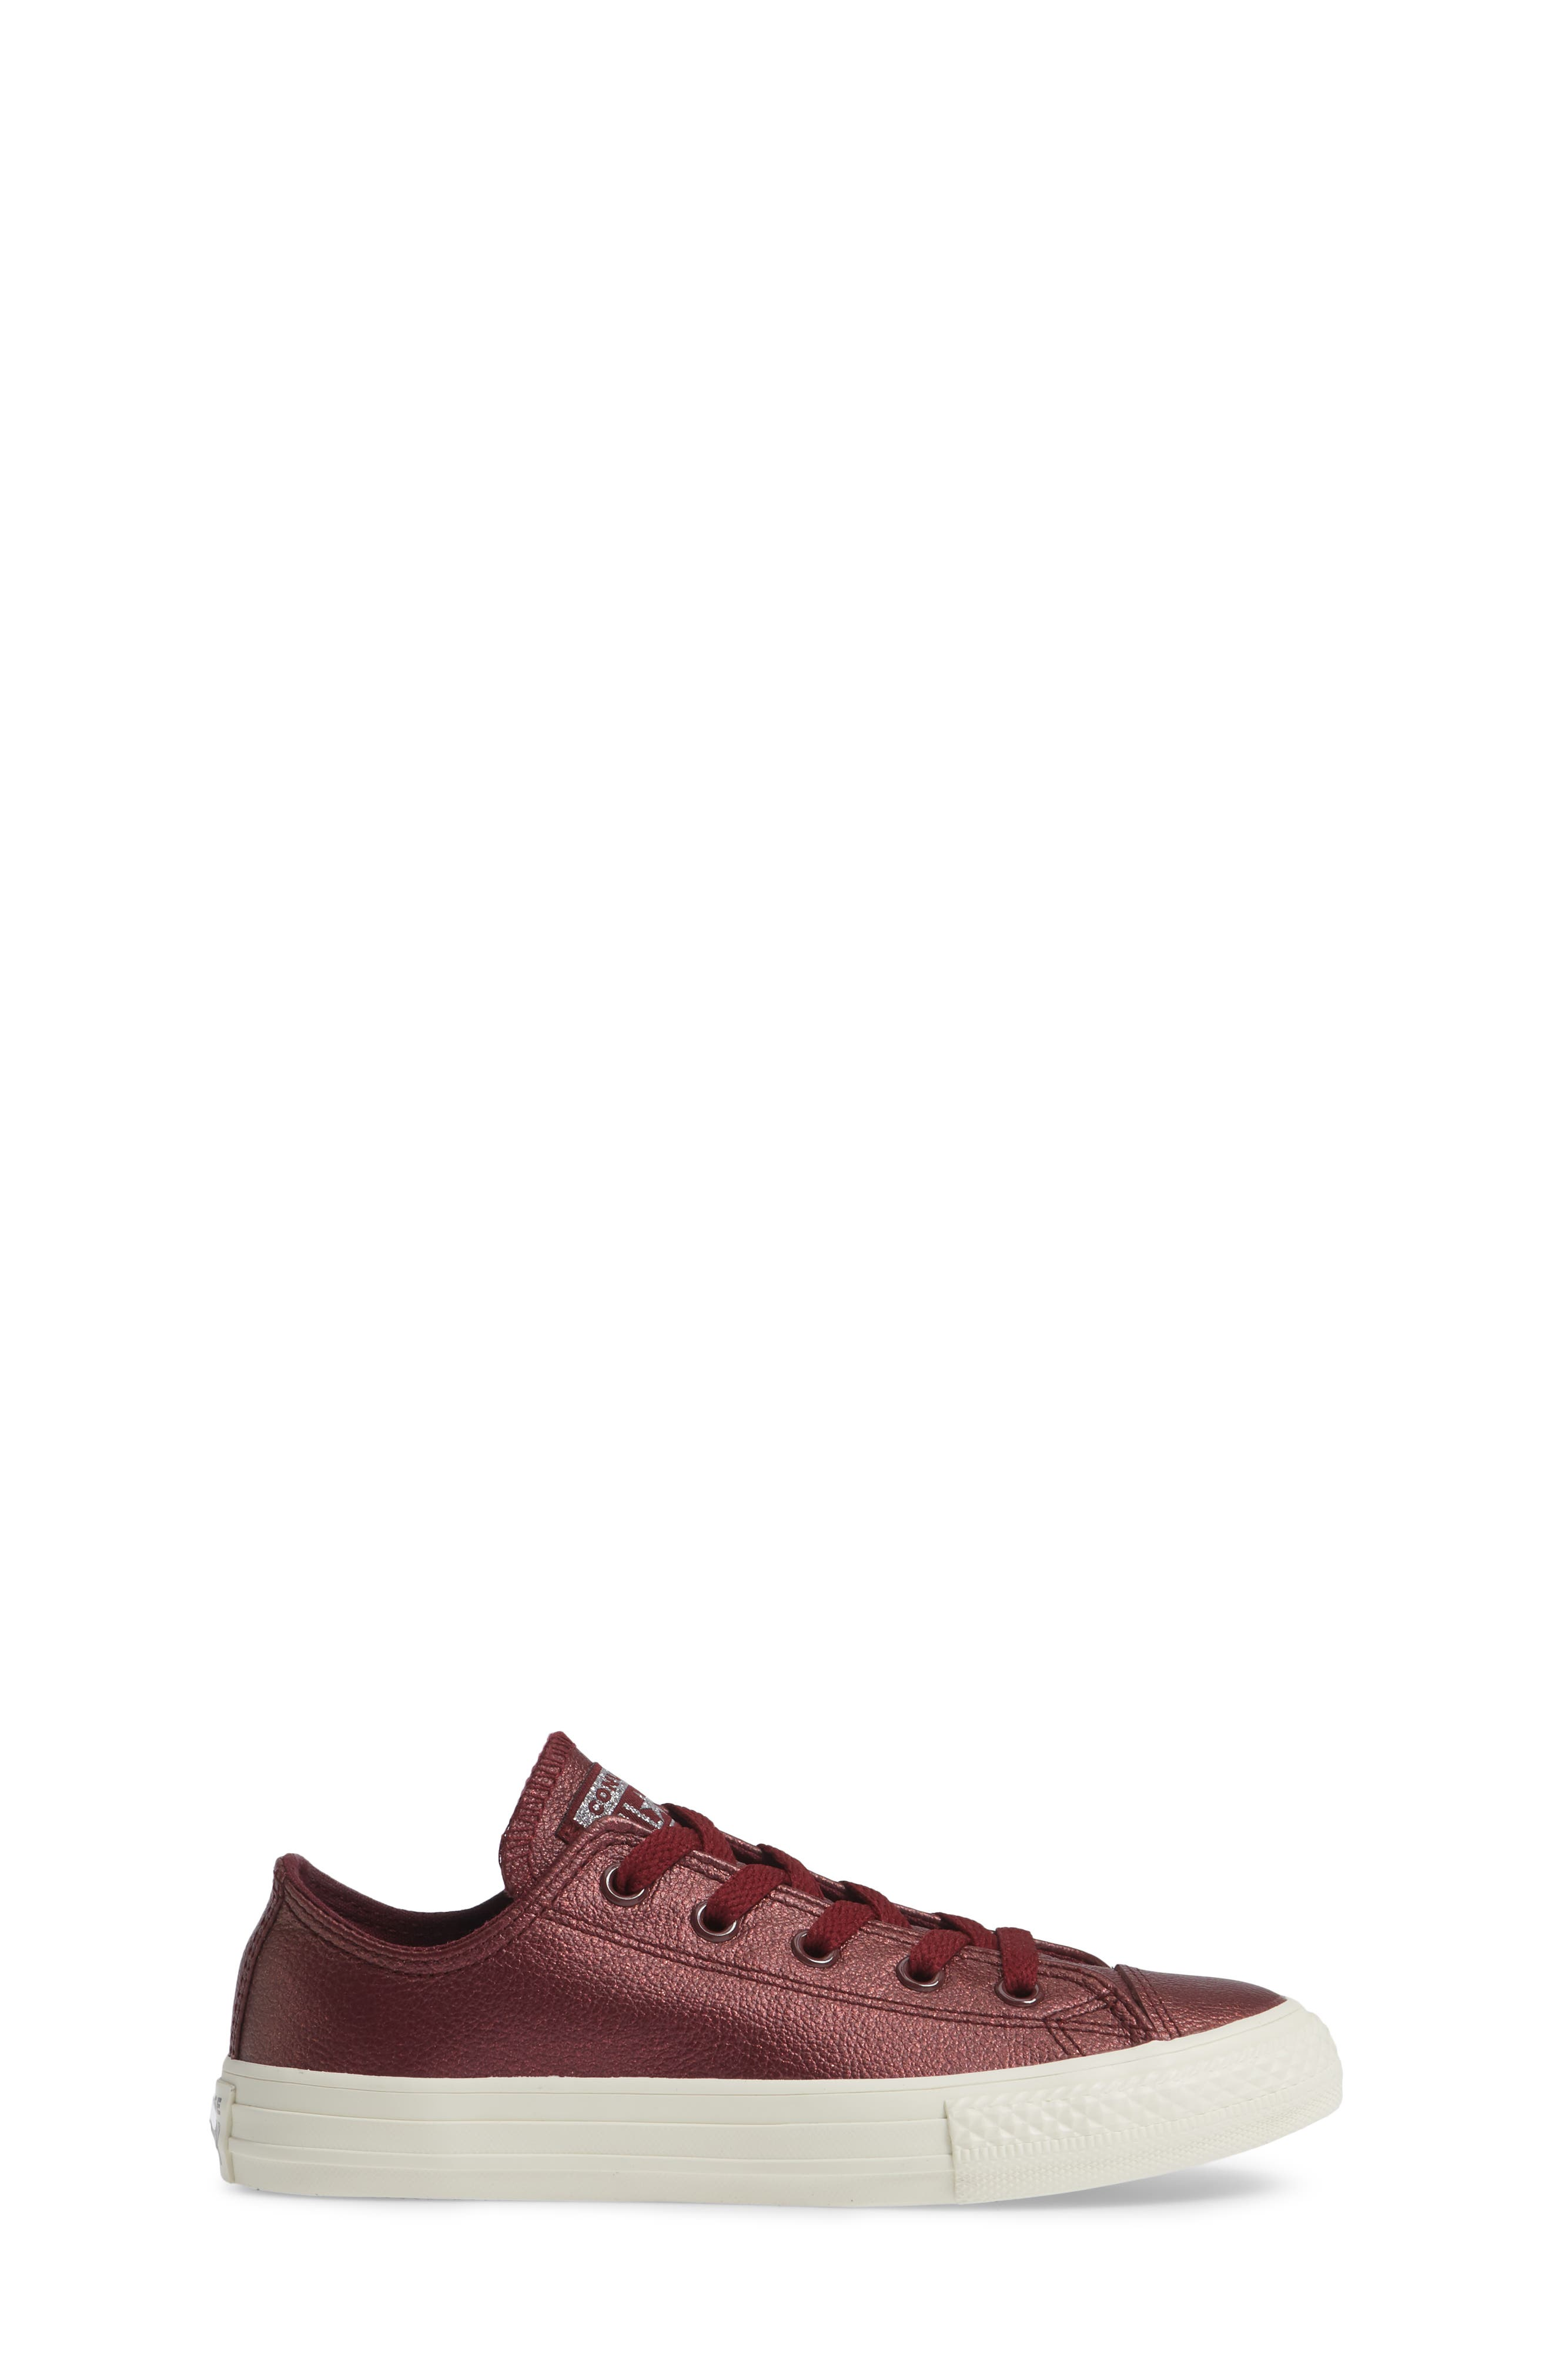 Chuck Taylor<sup>®</sup> All Star<sup>®</sup> Metallic Faux Leather Ox Sneaker,                             Alternate thumbnail 3, color,                             DARK BURGUNDY